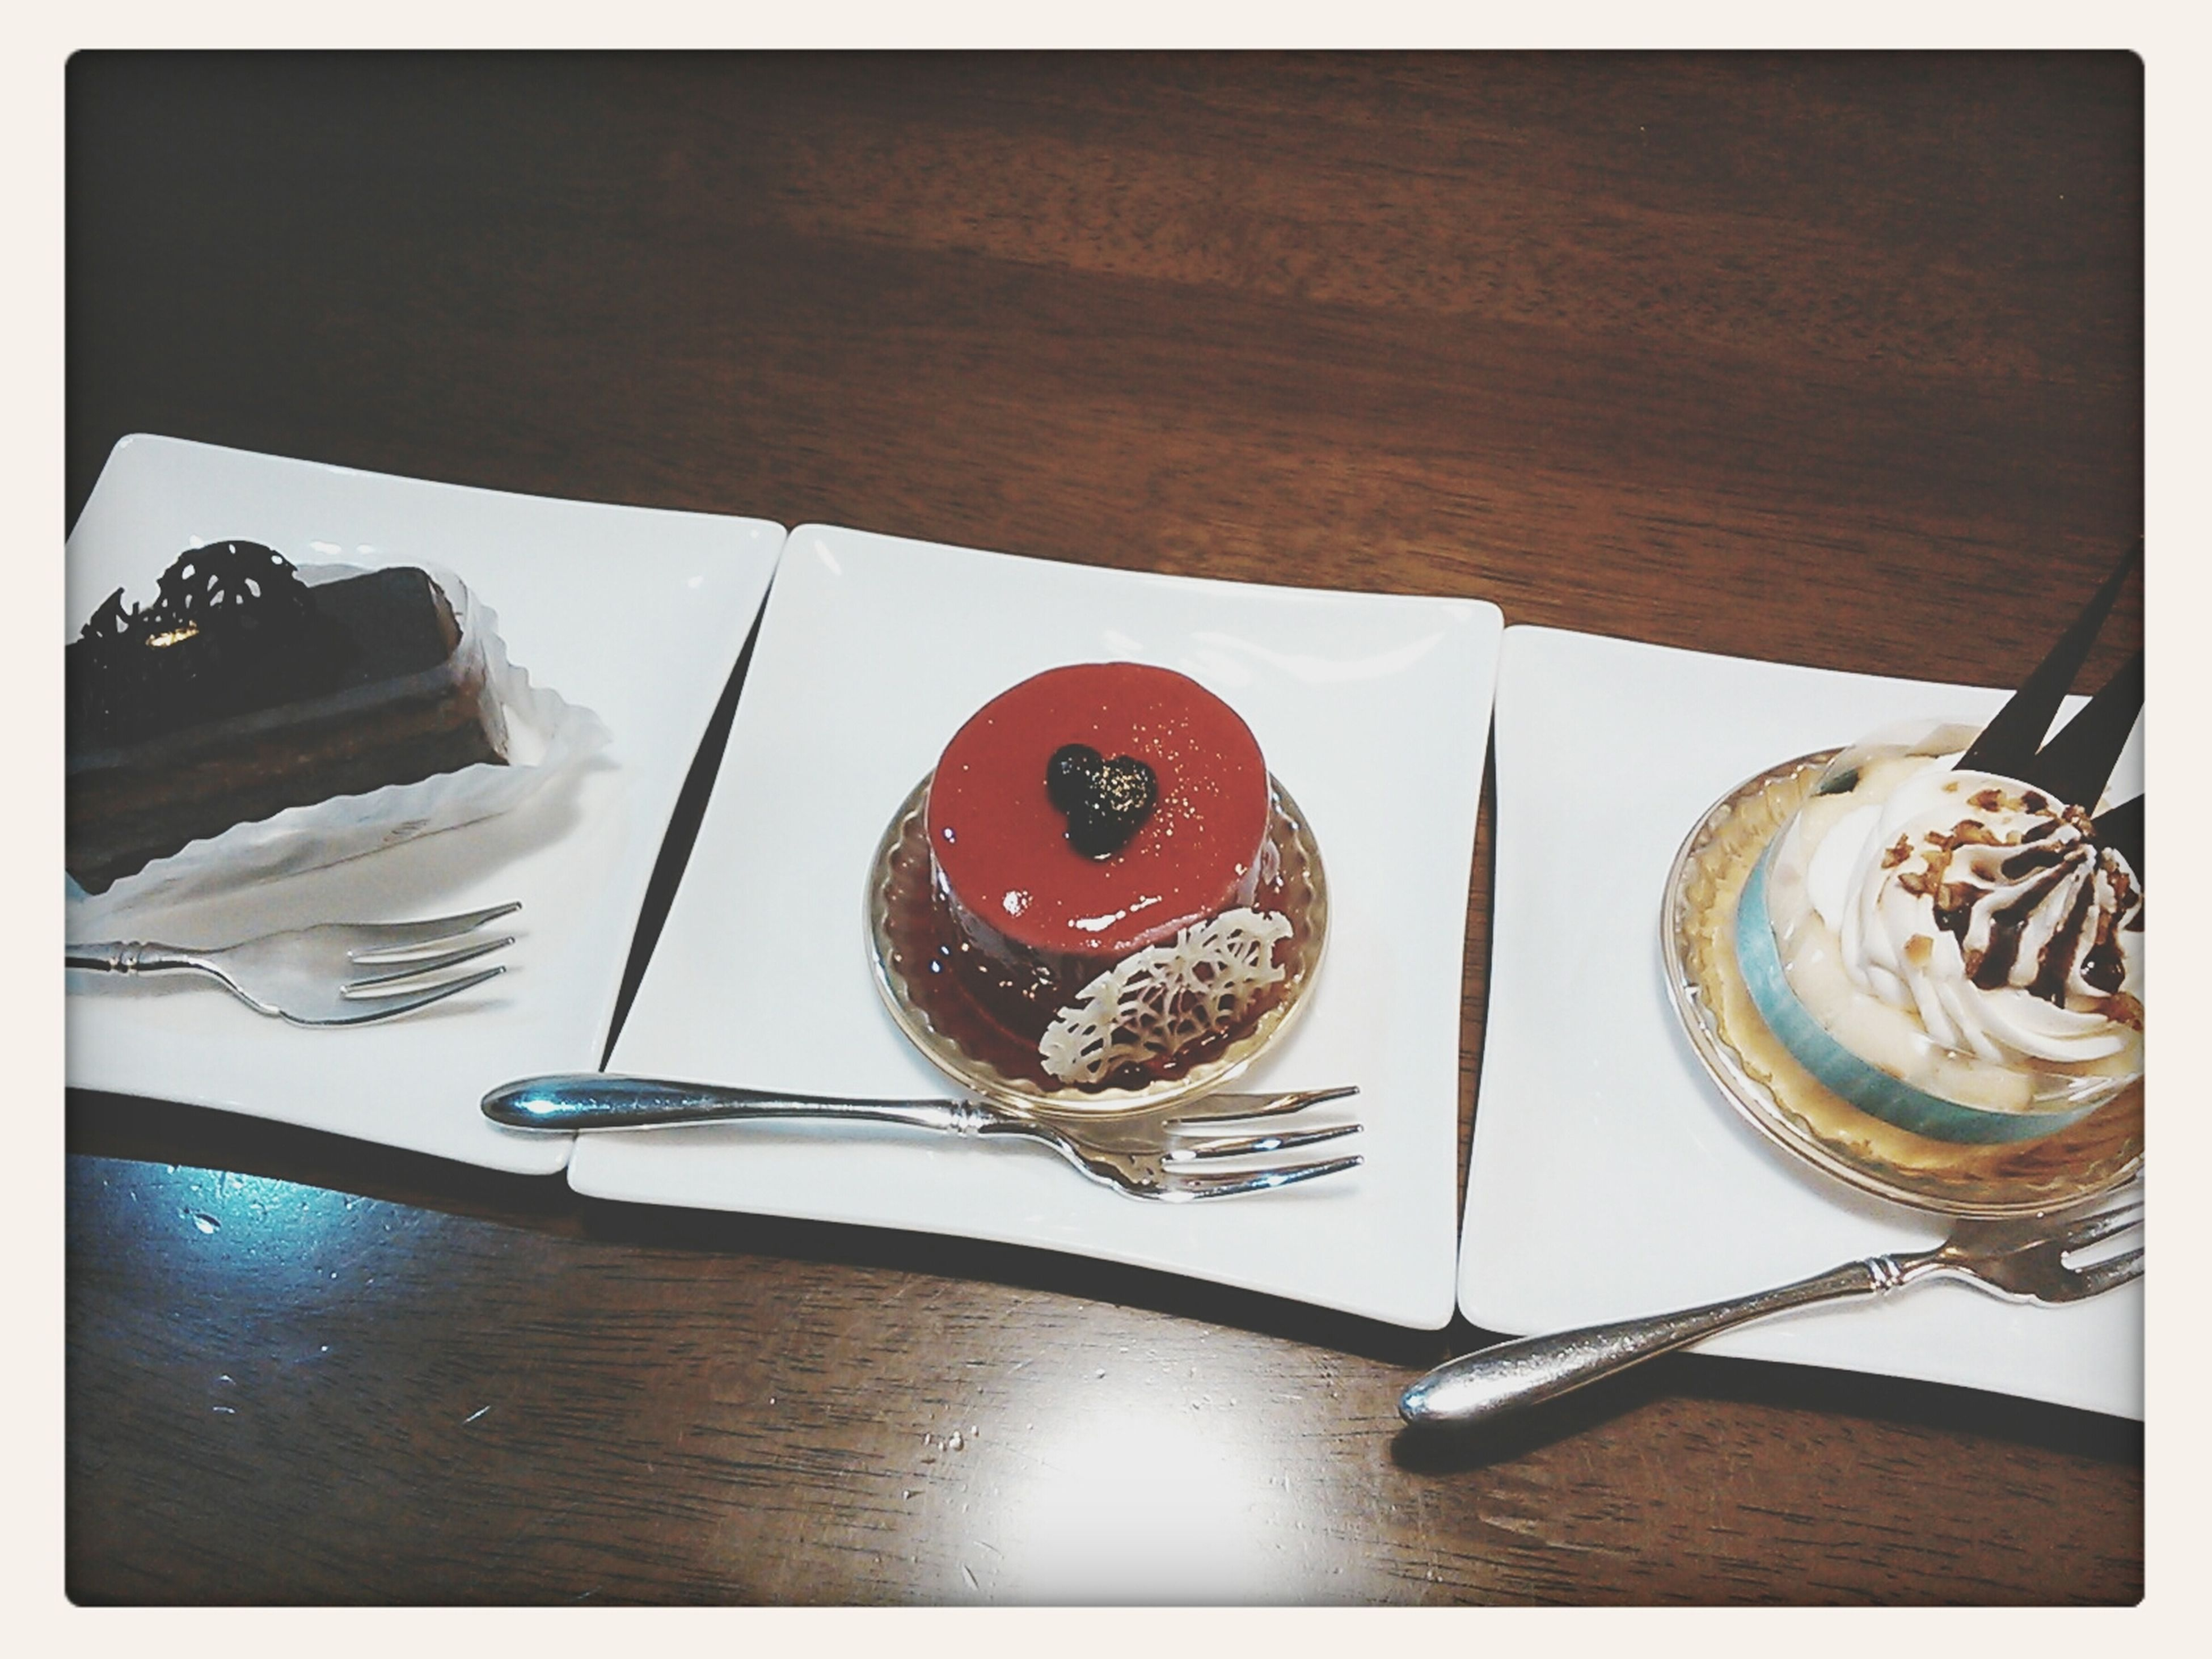 indoors, still life, food and drink, transfer print, table, sweet food, high angle view, auto post production filter, food, dessert, plate, cake, close-up, indulgence, fork, no people, freshness, ready-to-eat, directly above, spoon